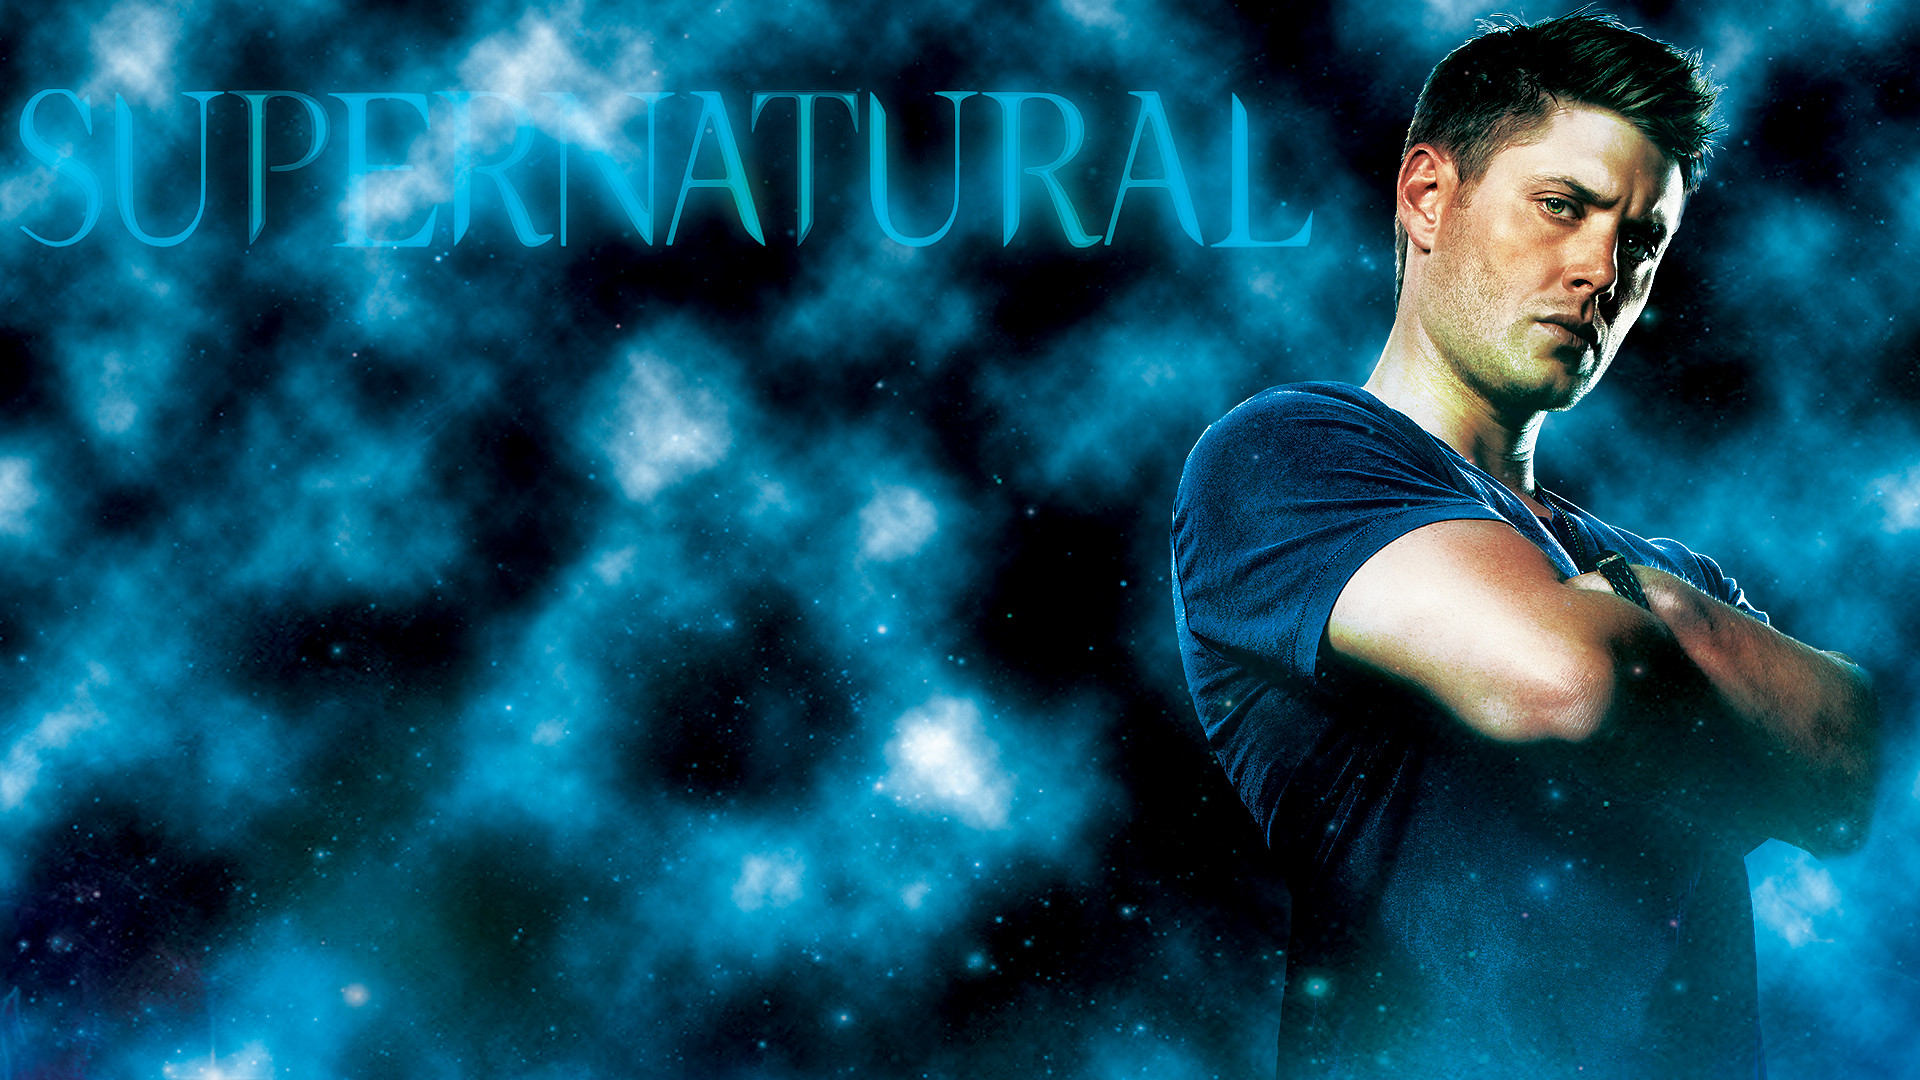 ... Supernatural Wallpaper Laptop GolfClub